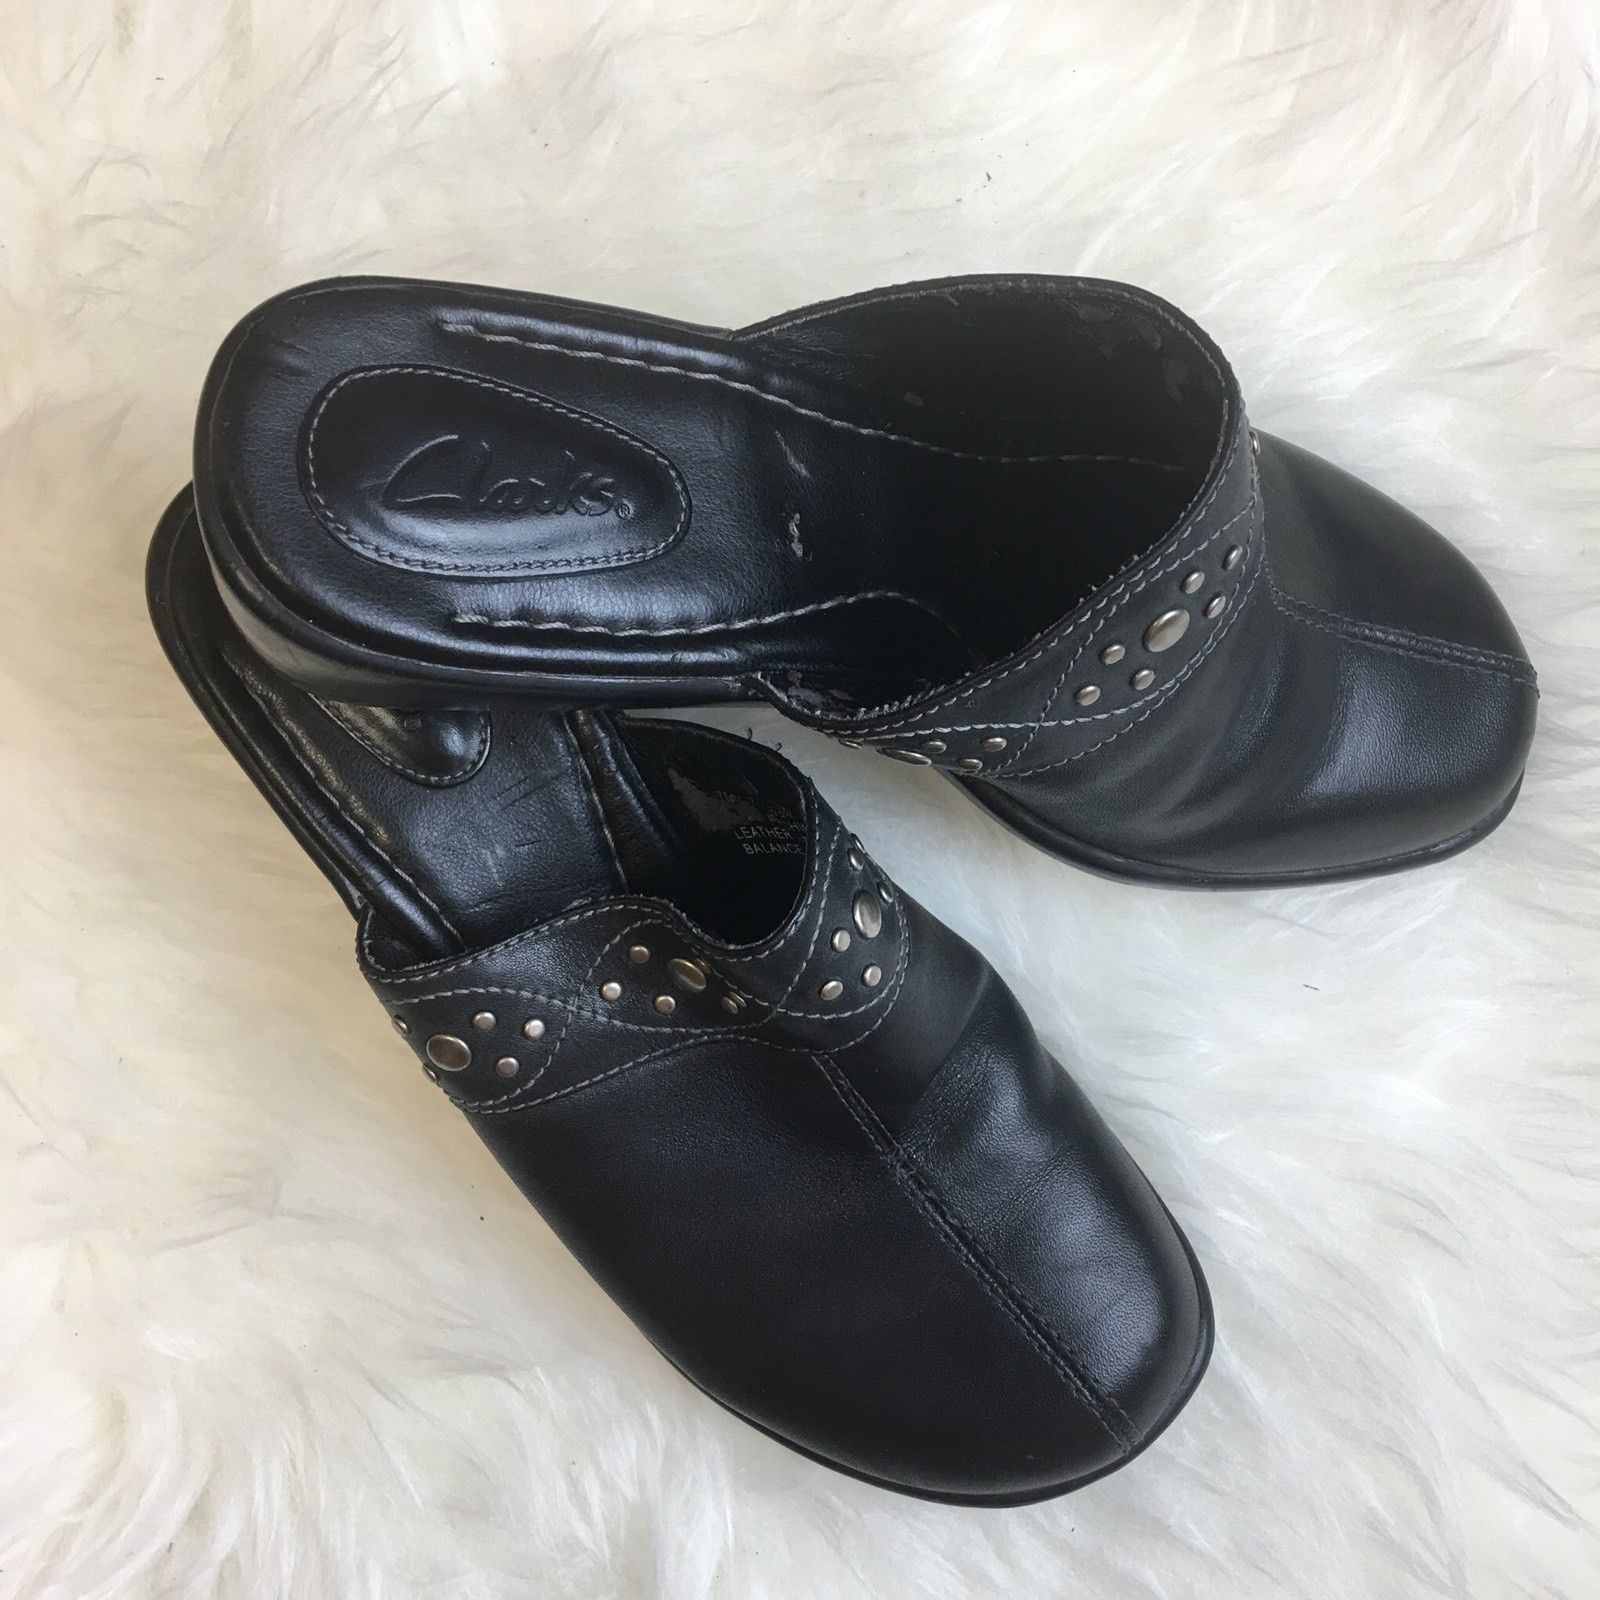 Clarks Womens Size 6.5 M Clogs Mules Black Leather